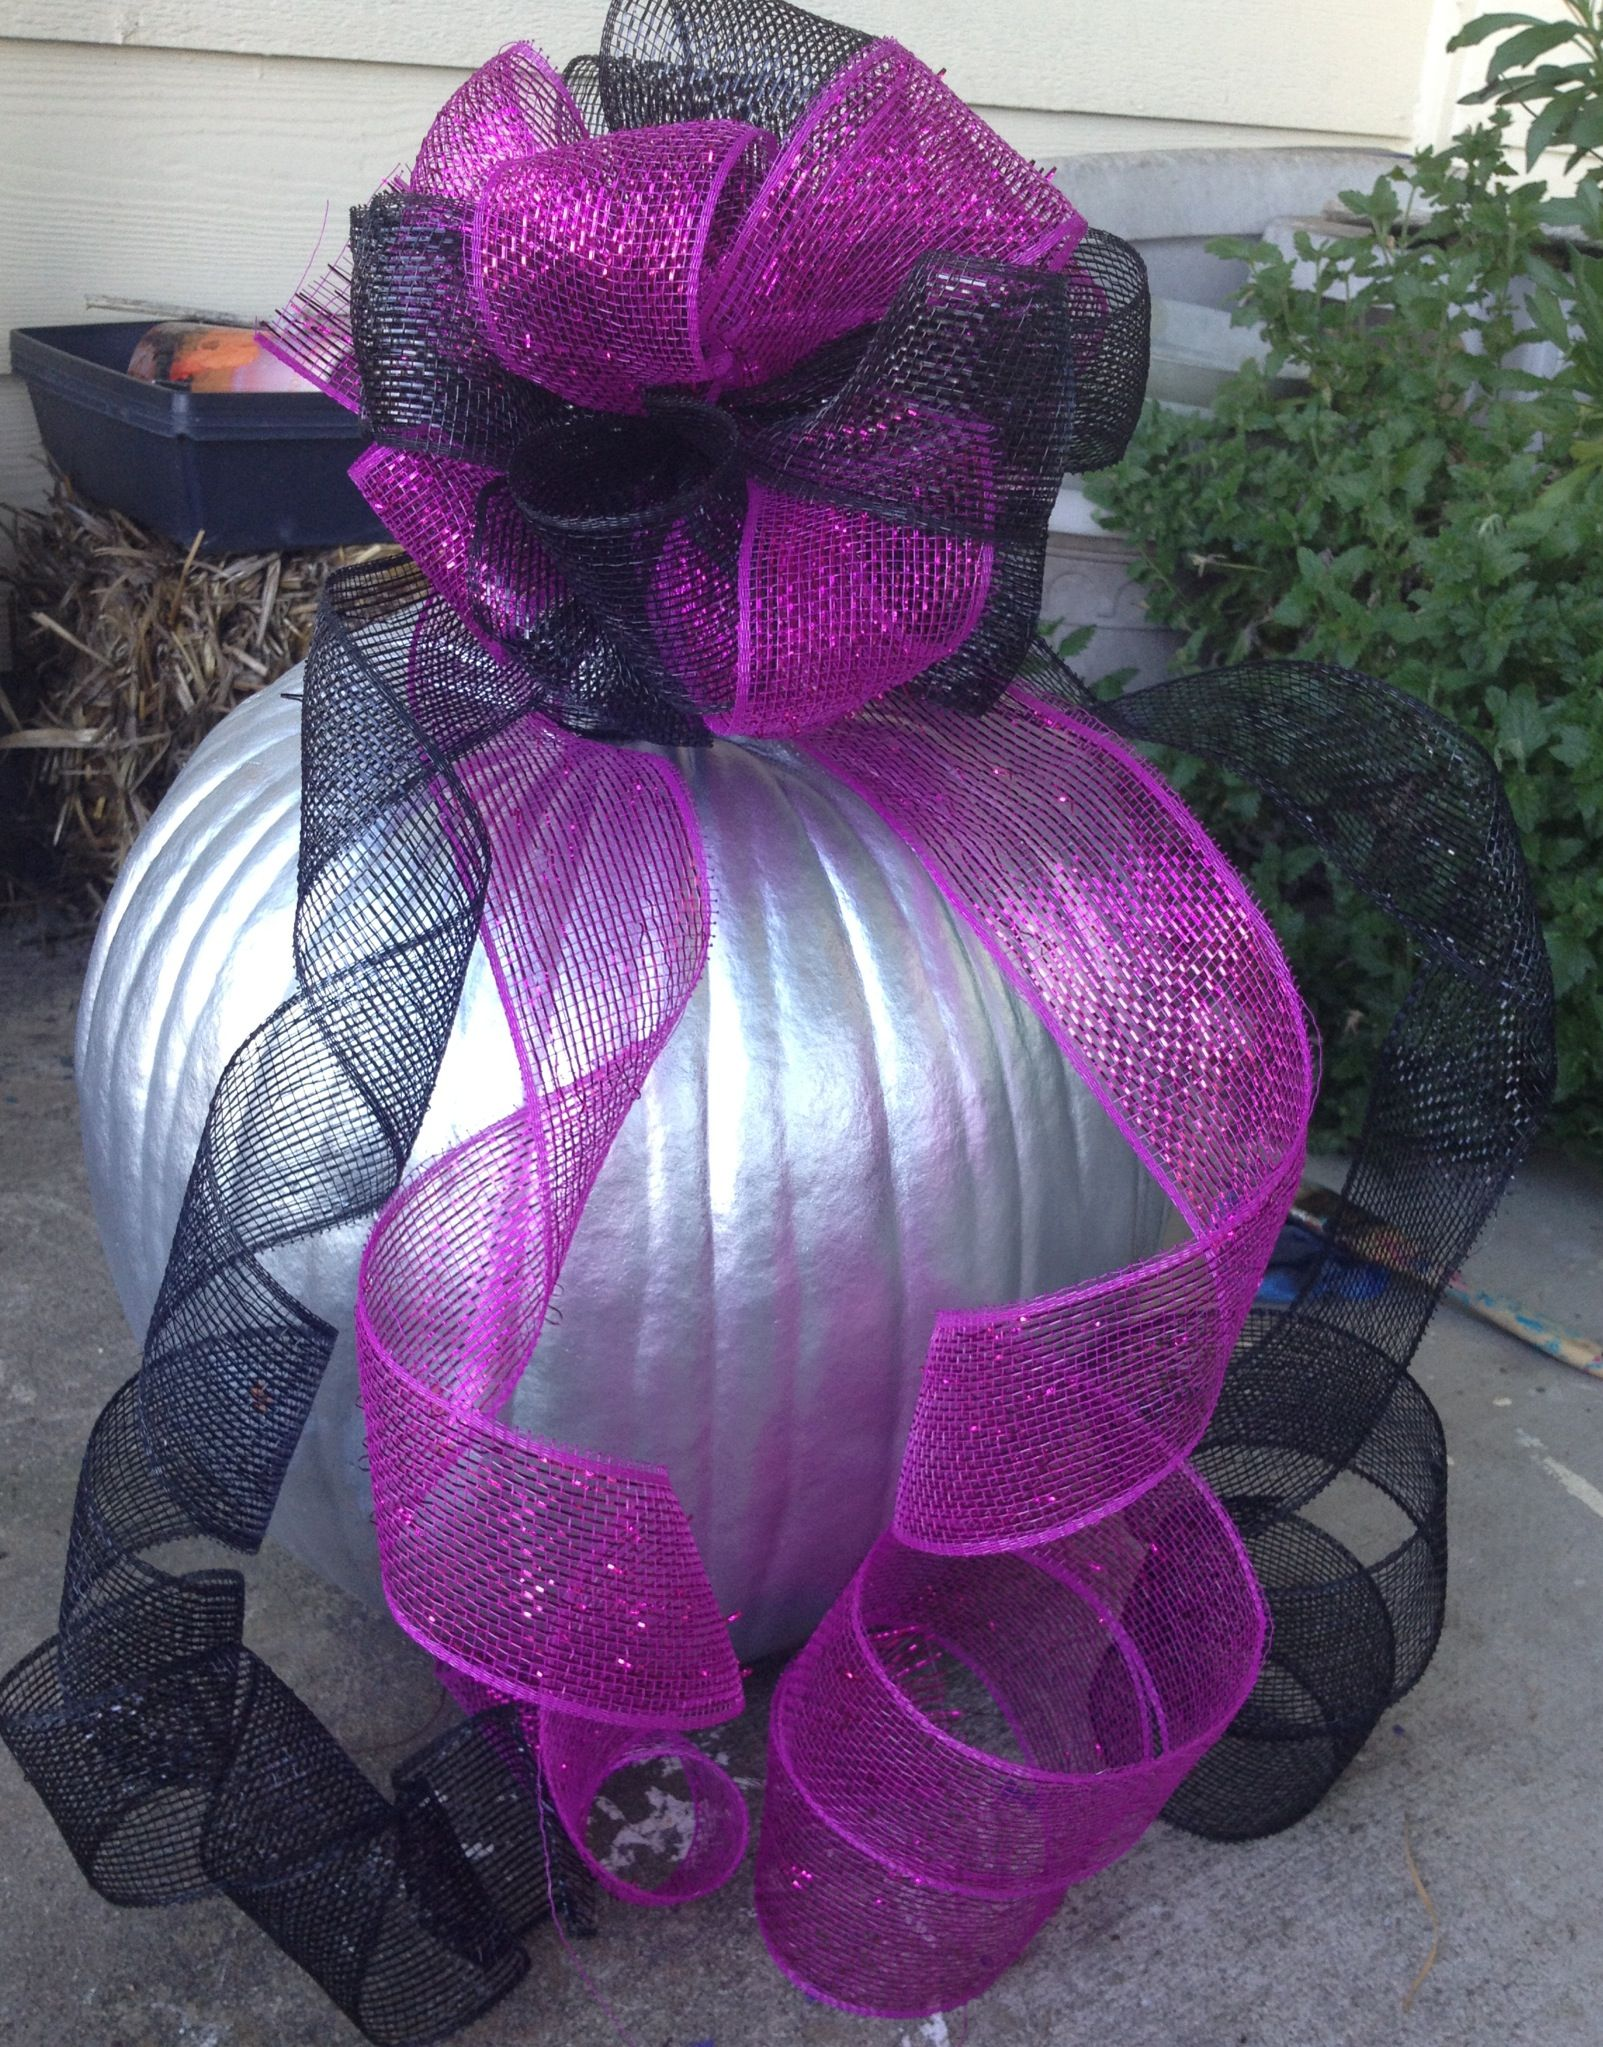 Silver pumpkin with a black and purple bow